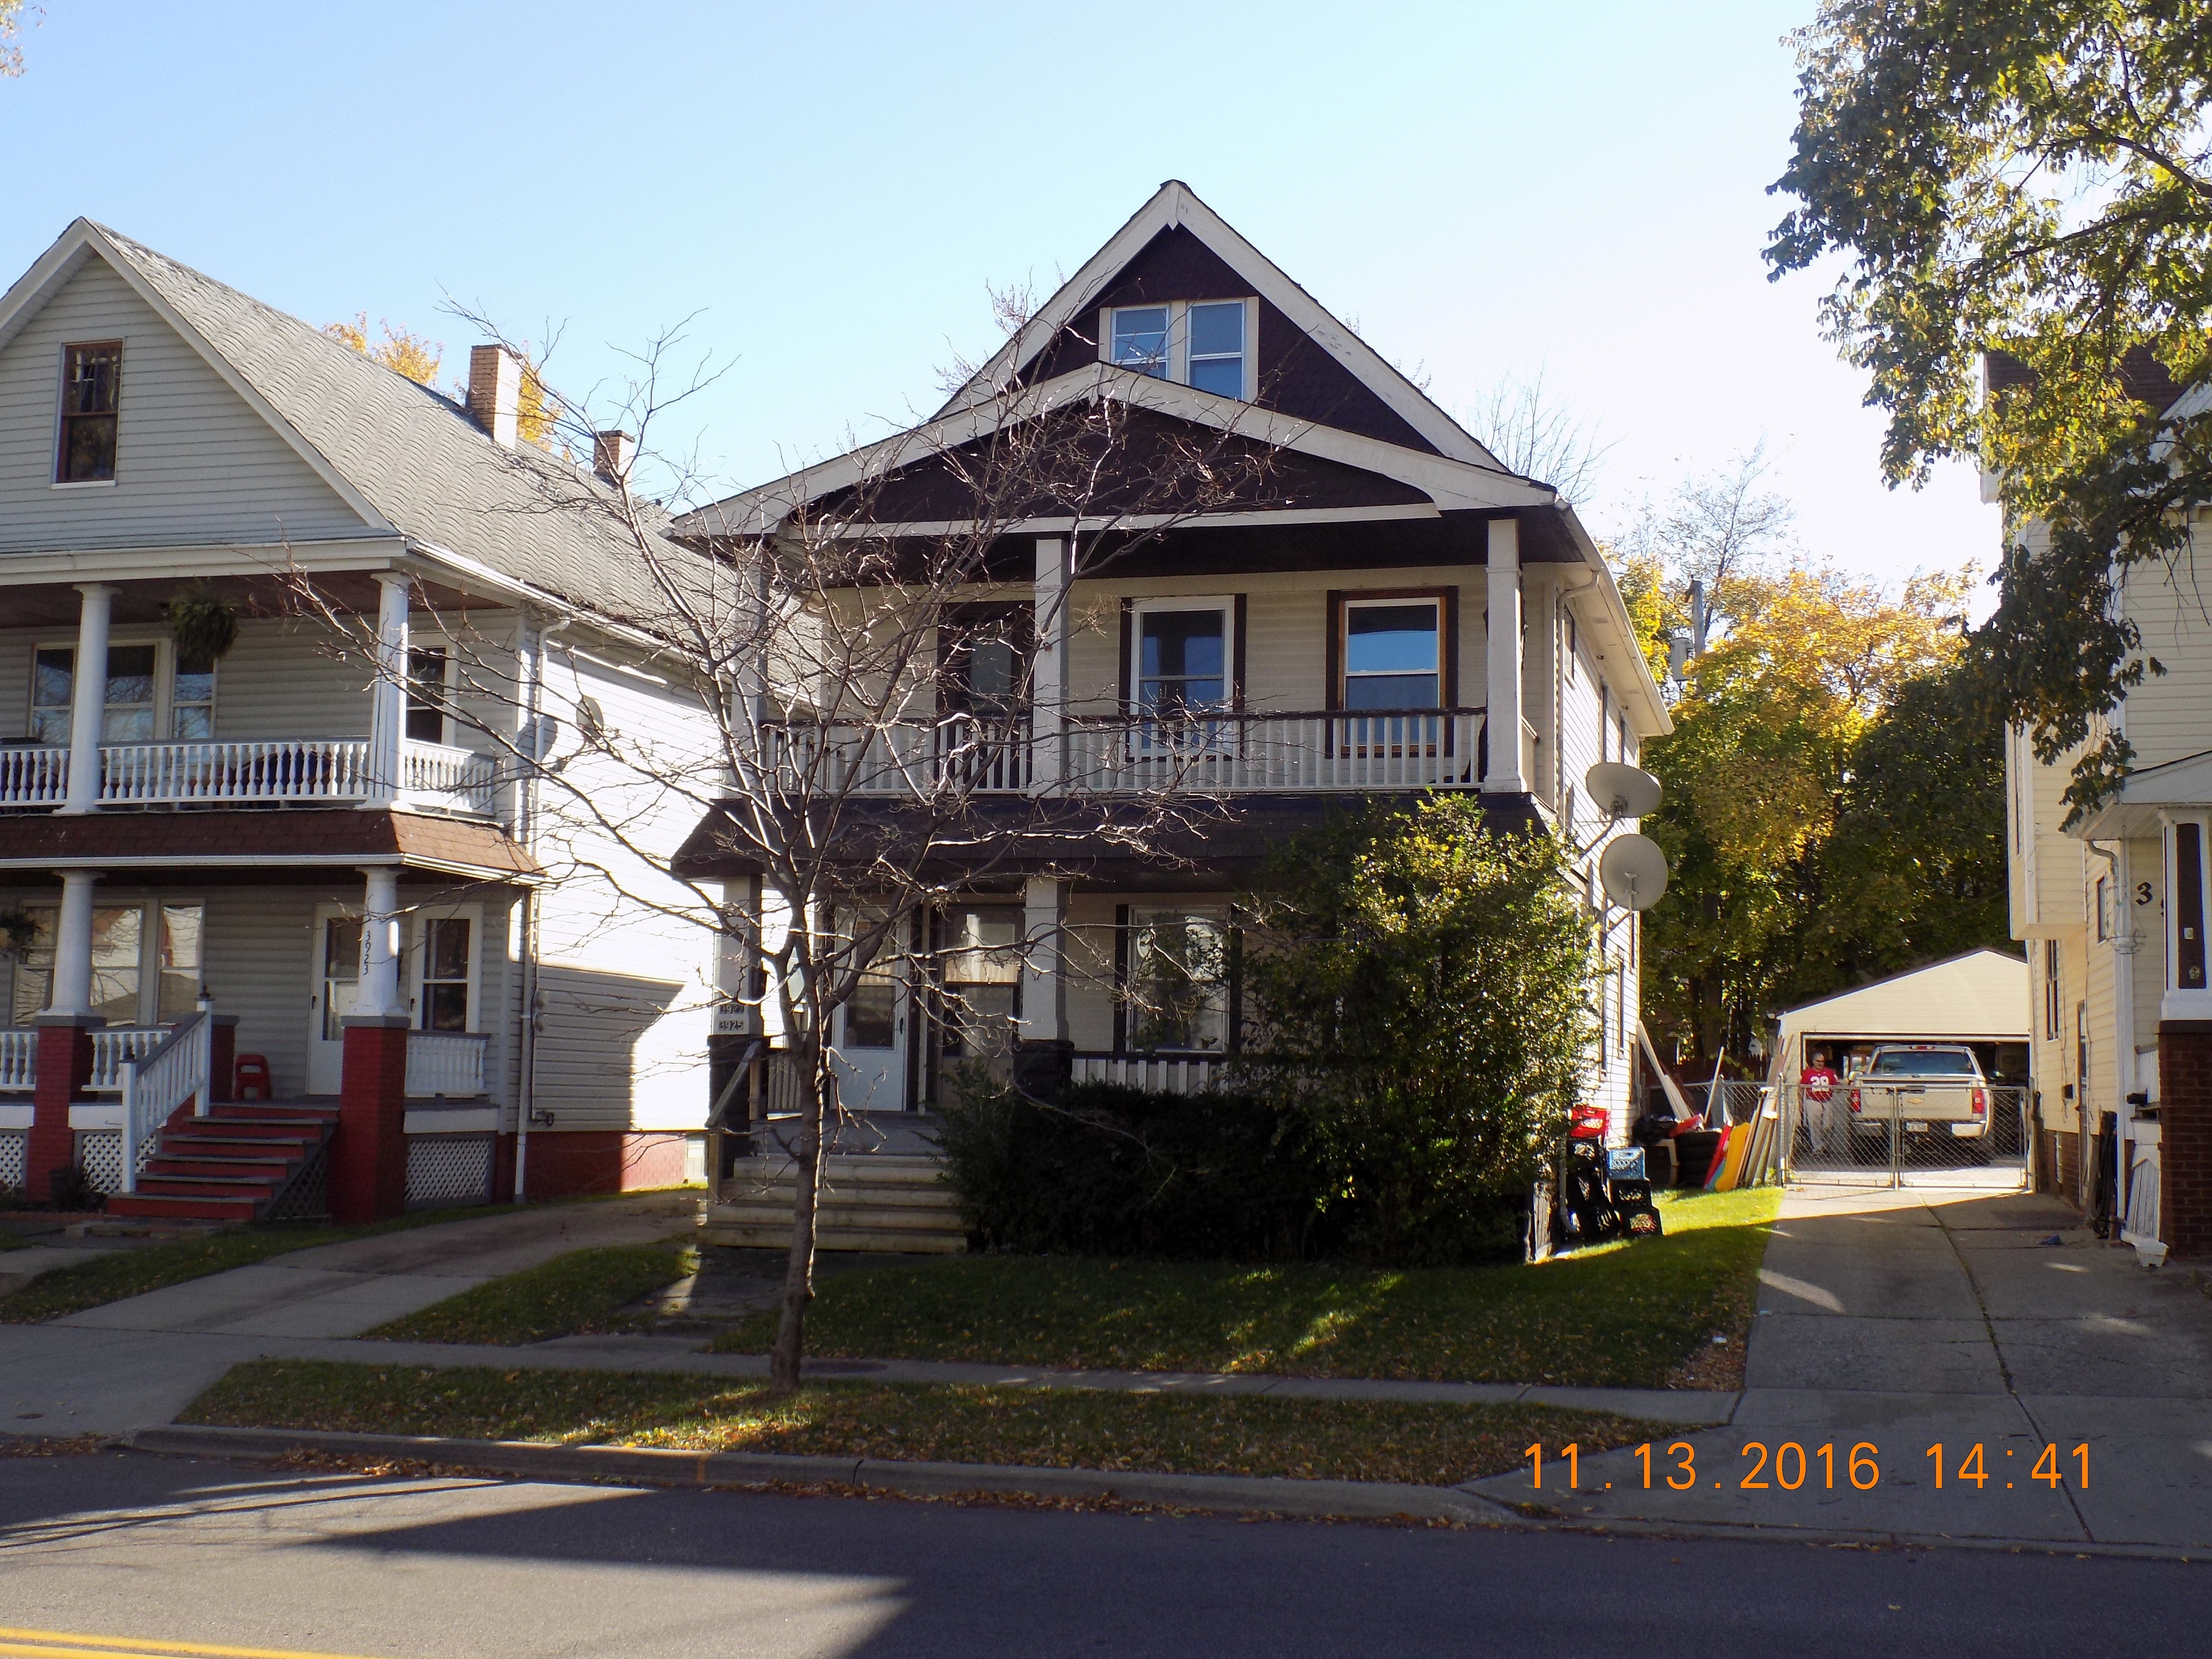 Best 4527 W 30Th St Cleveland Oh 44109 2 Bedroom Apartment For Rent Padmapper With Pictures